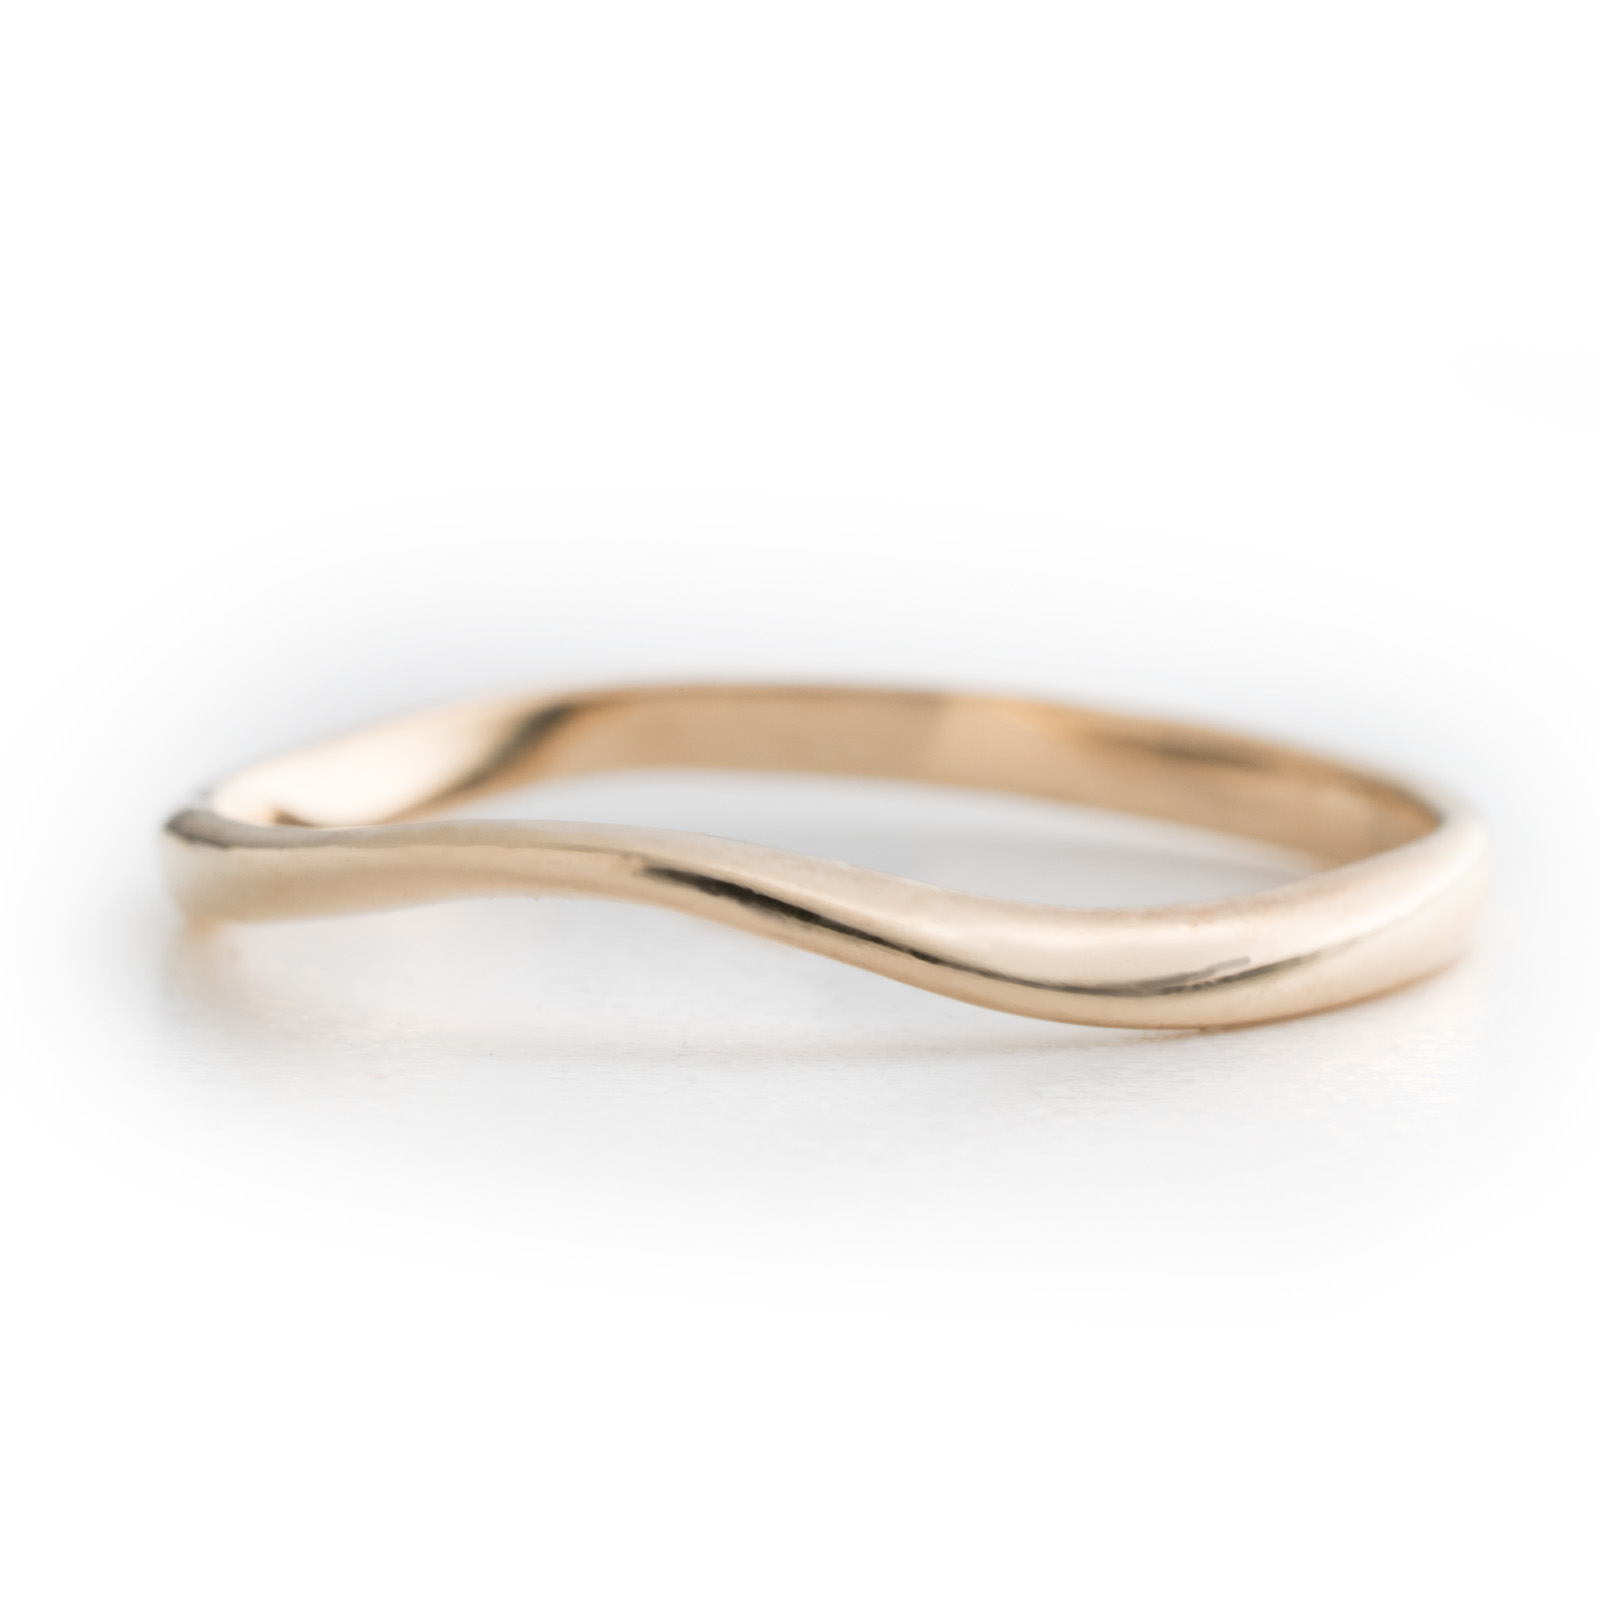 Show Road Jewelry Original Ring - Starting at $75, www.showroadjewelry.com10% off now through 12/28 with code GIVINGGROUPIE!